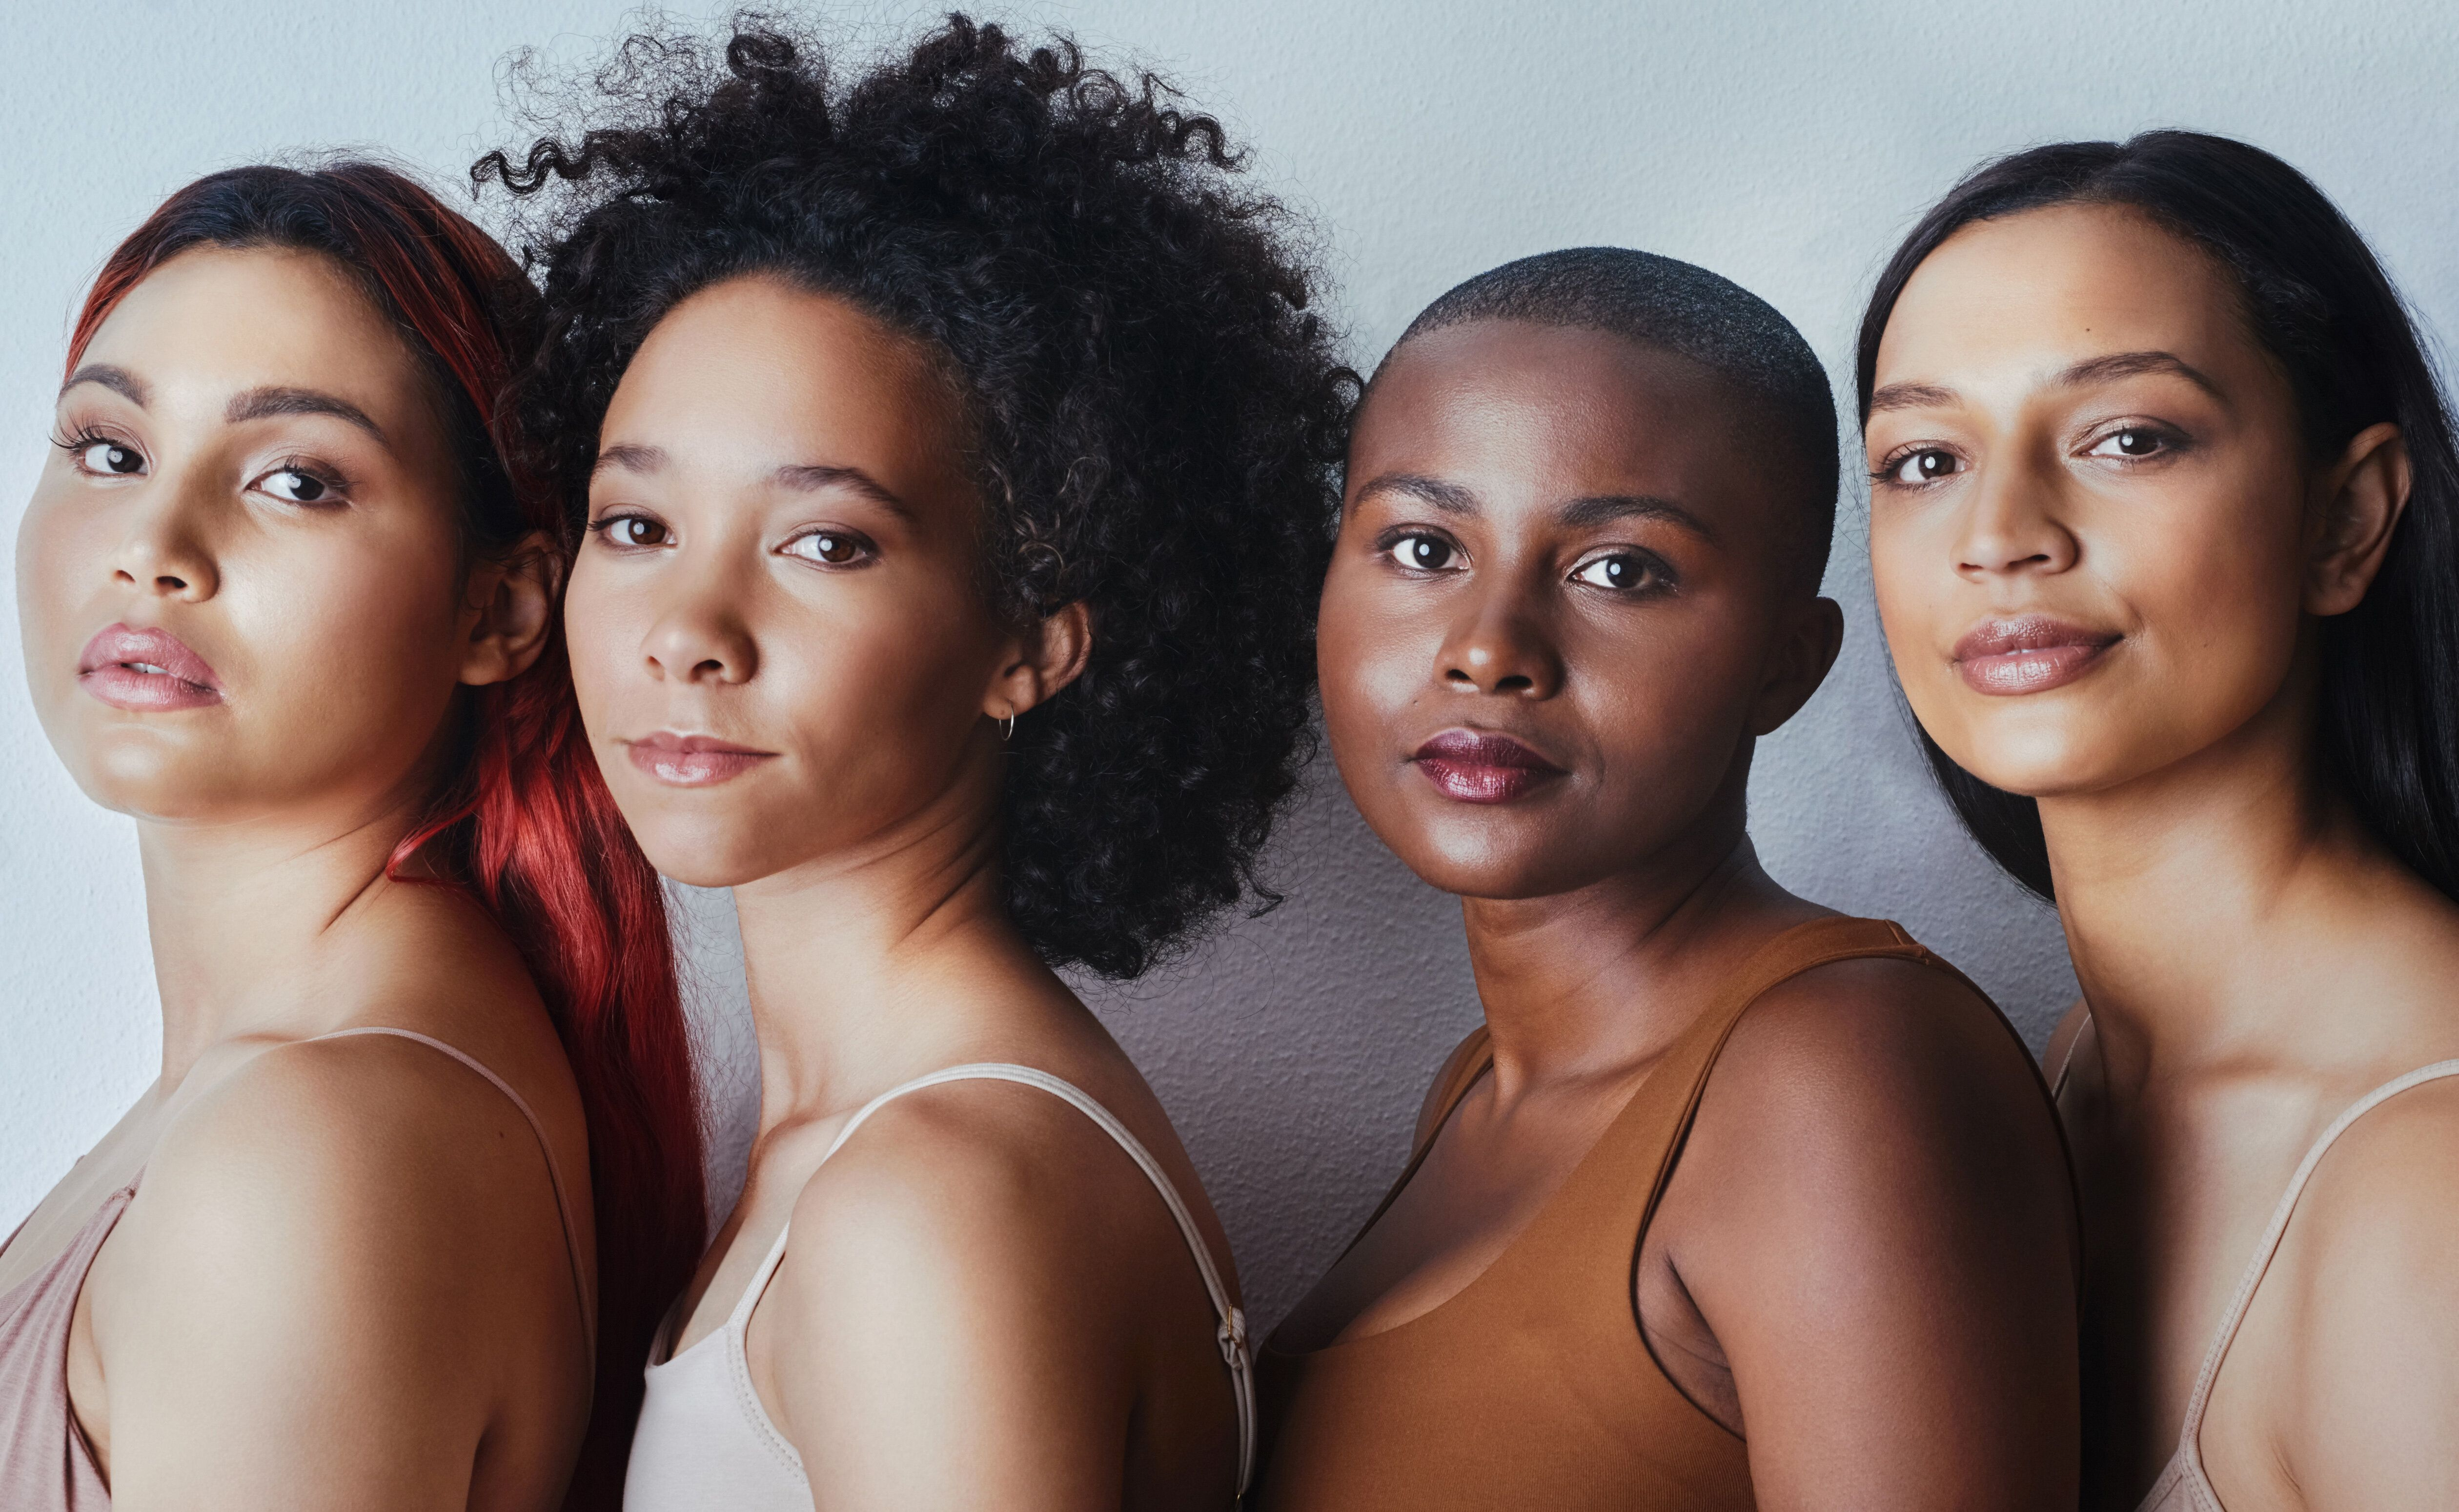 Skin types are more nuanced than the generalized labels of oily, dry, normal and combination.